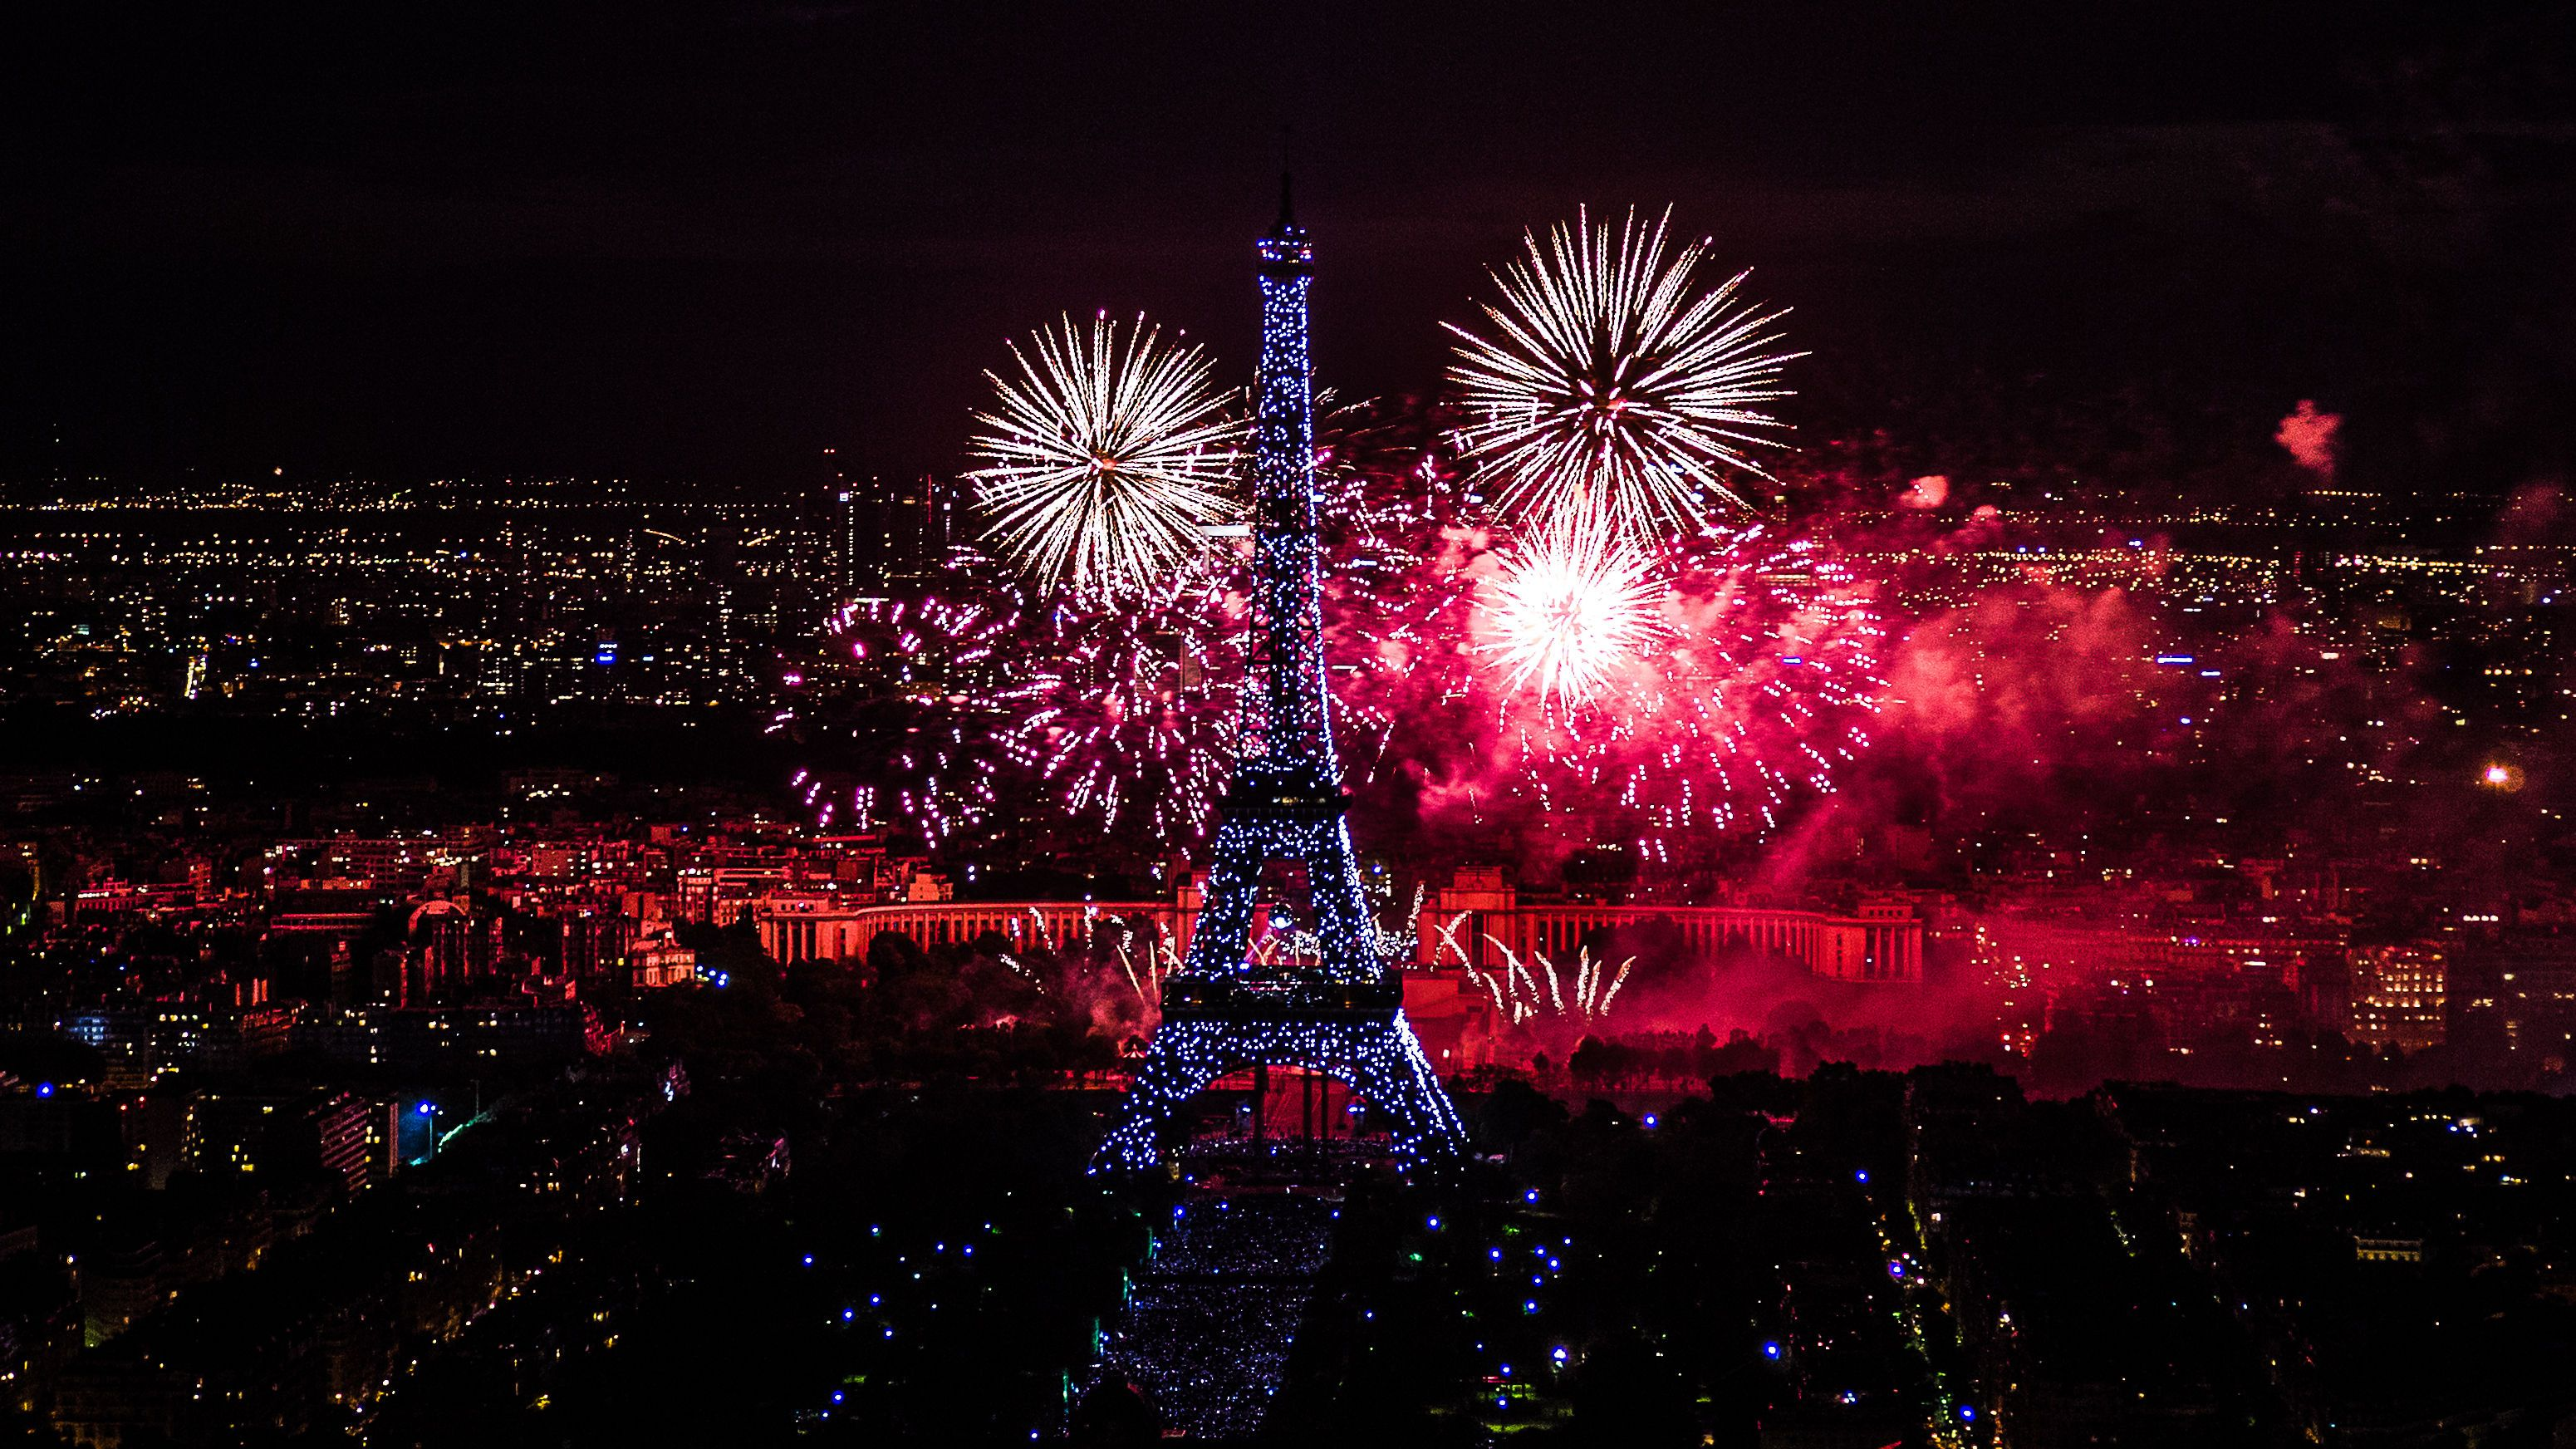 Eiffel Tower wallpapers at Night HD Wallpapers, Images